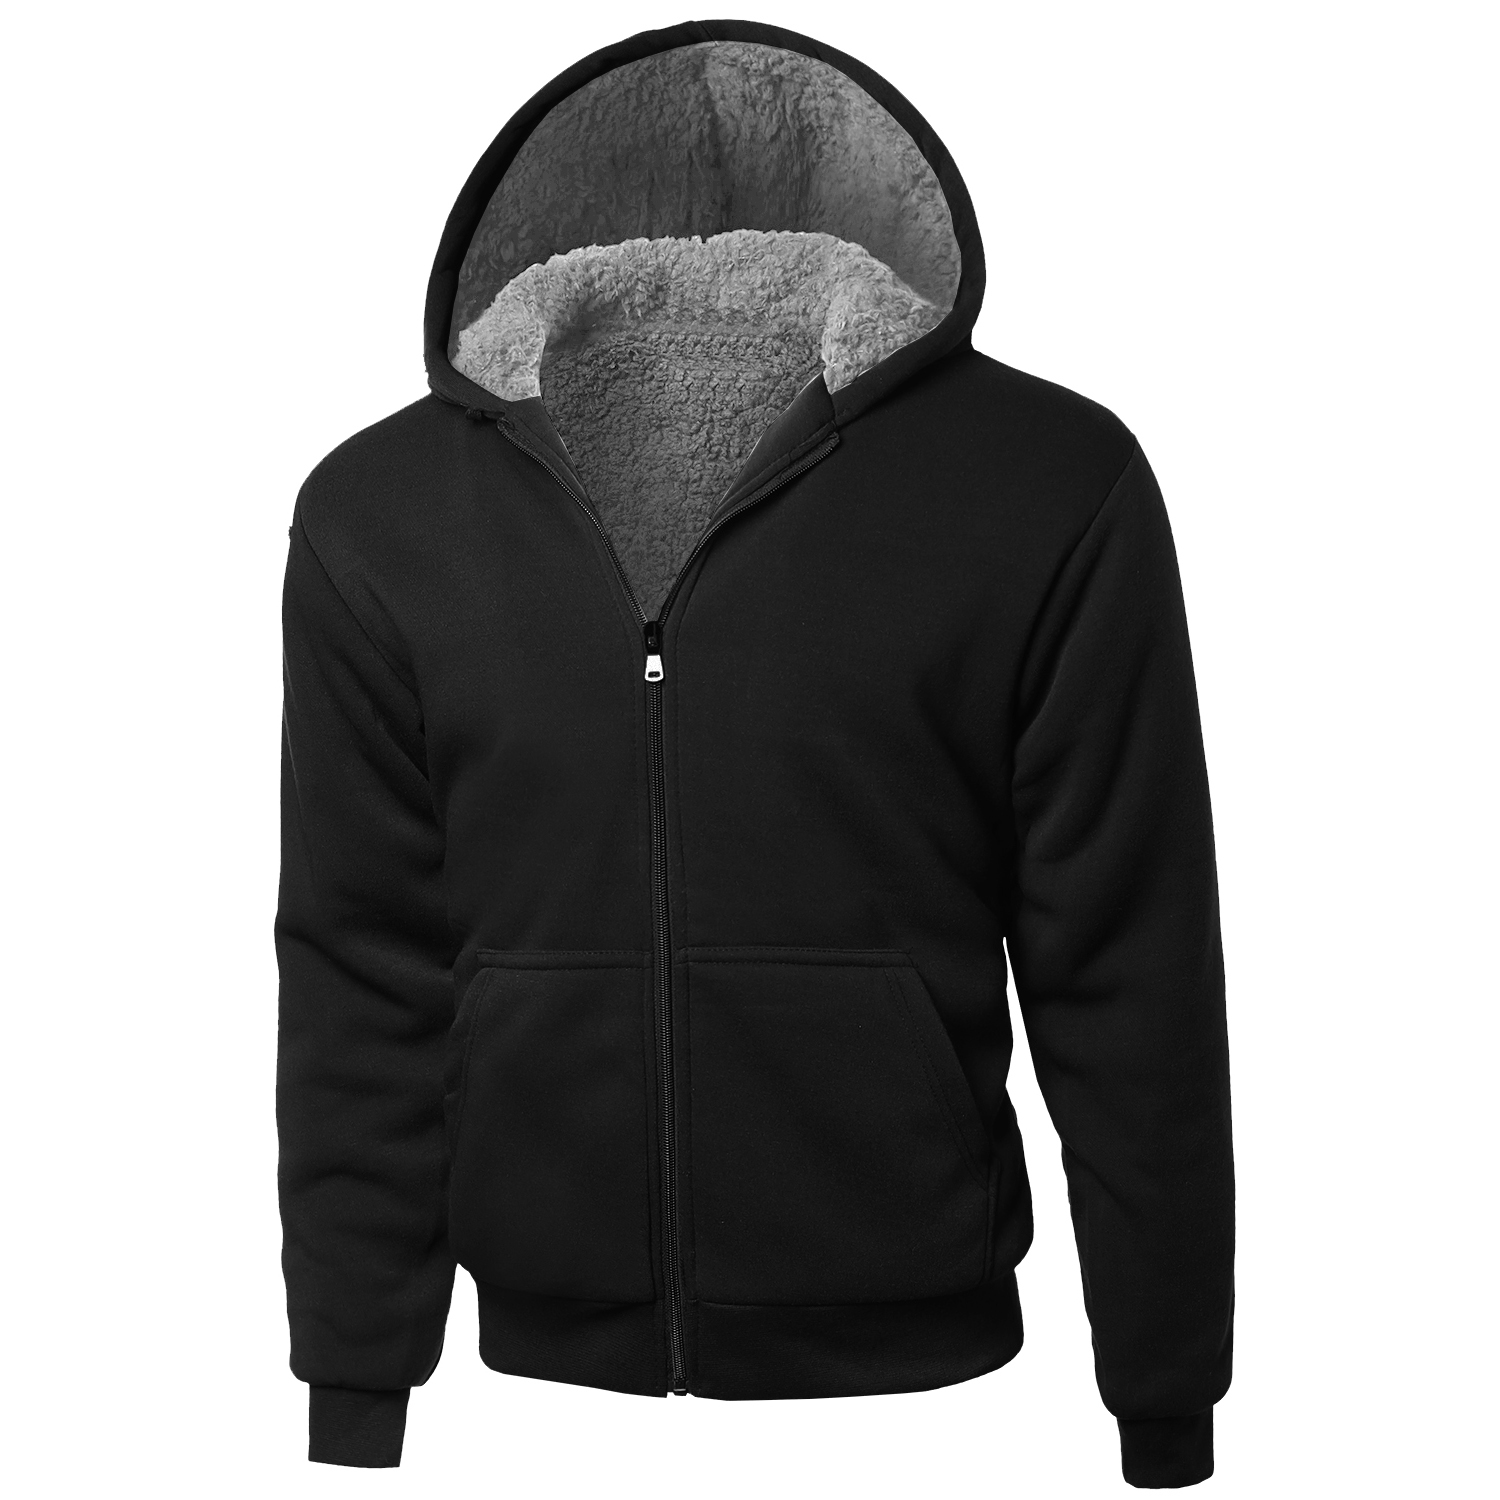 Details about Men's Hoodie Zip Up Jacket Sherpa Lined Fleece & Quilted Sleeves